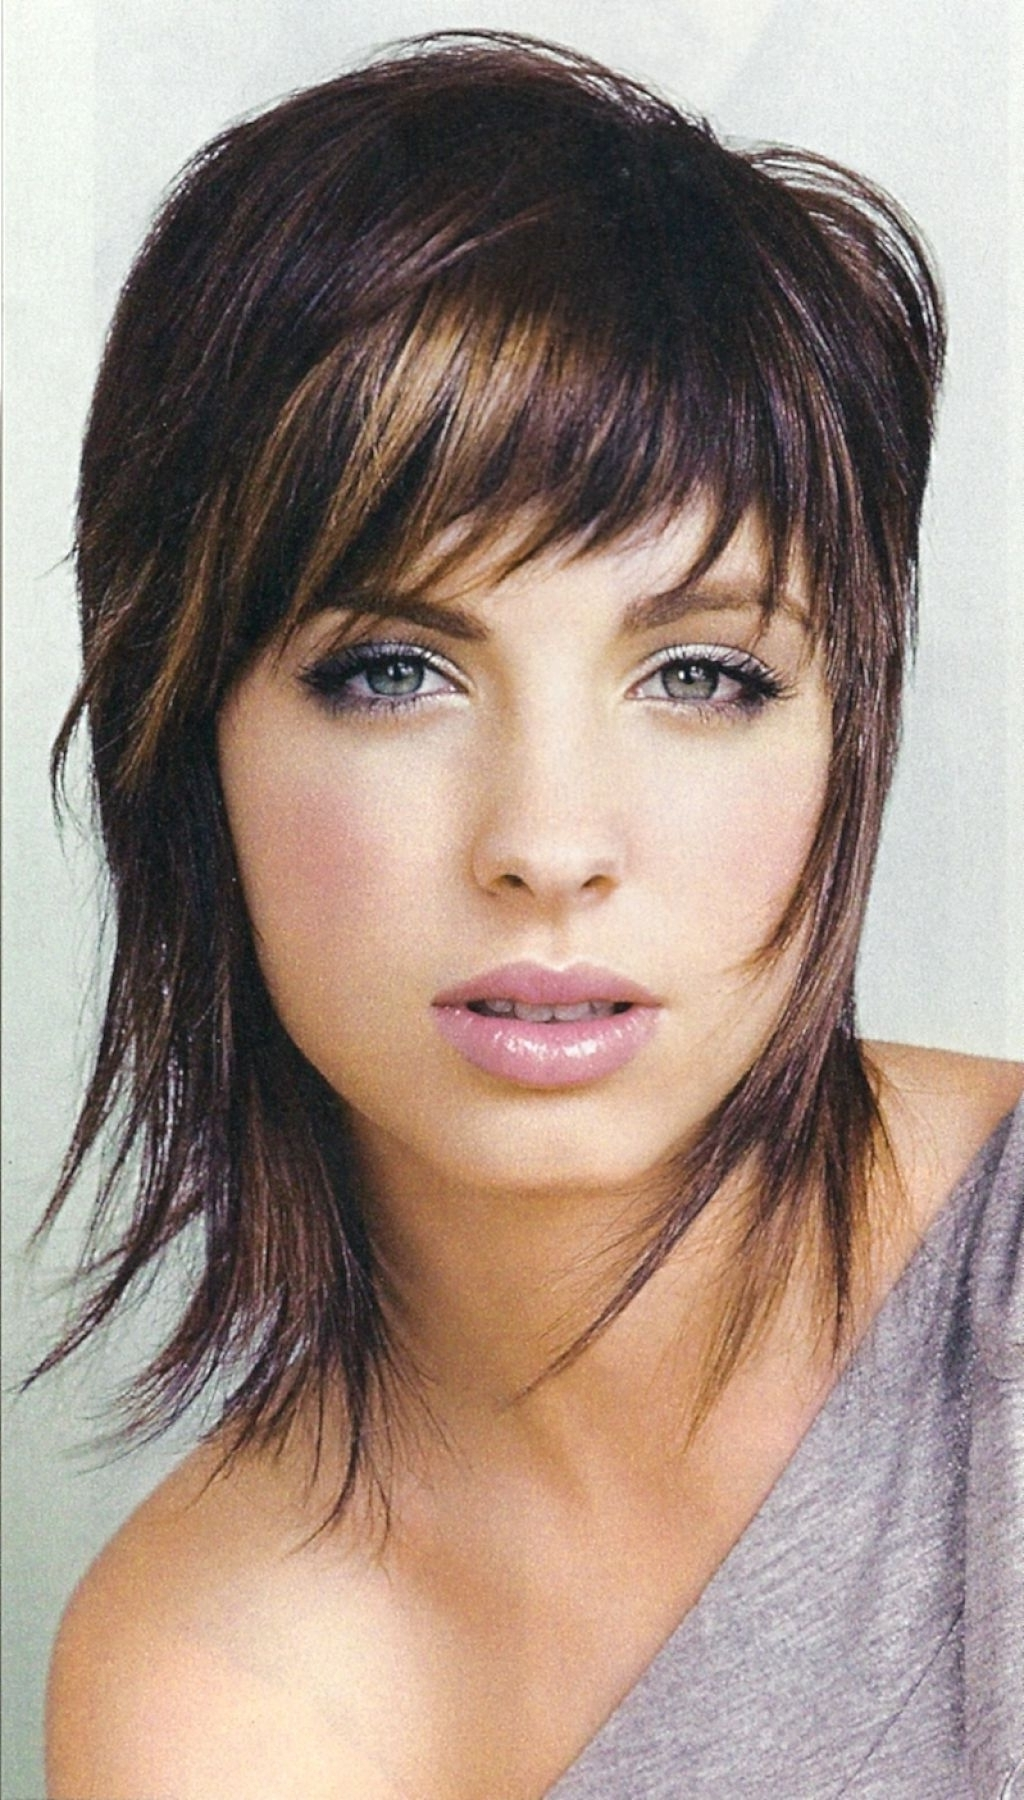 Medium Shaggy Hairstyle For Fine Hair Medium Shag Hairstyles Women For Most Up To Date Shaggy Hairstyles For Fine Hair (View 10 of 15)